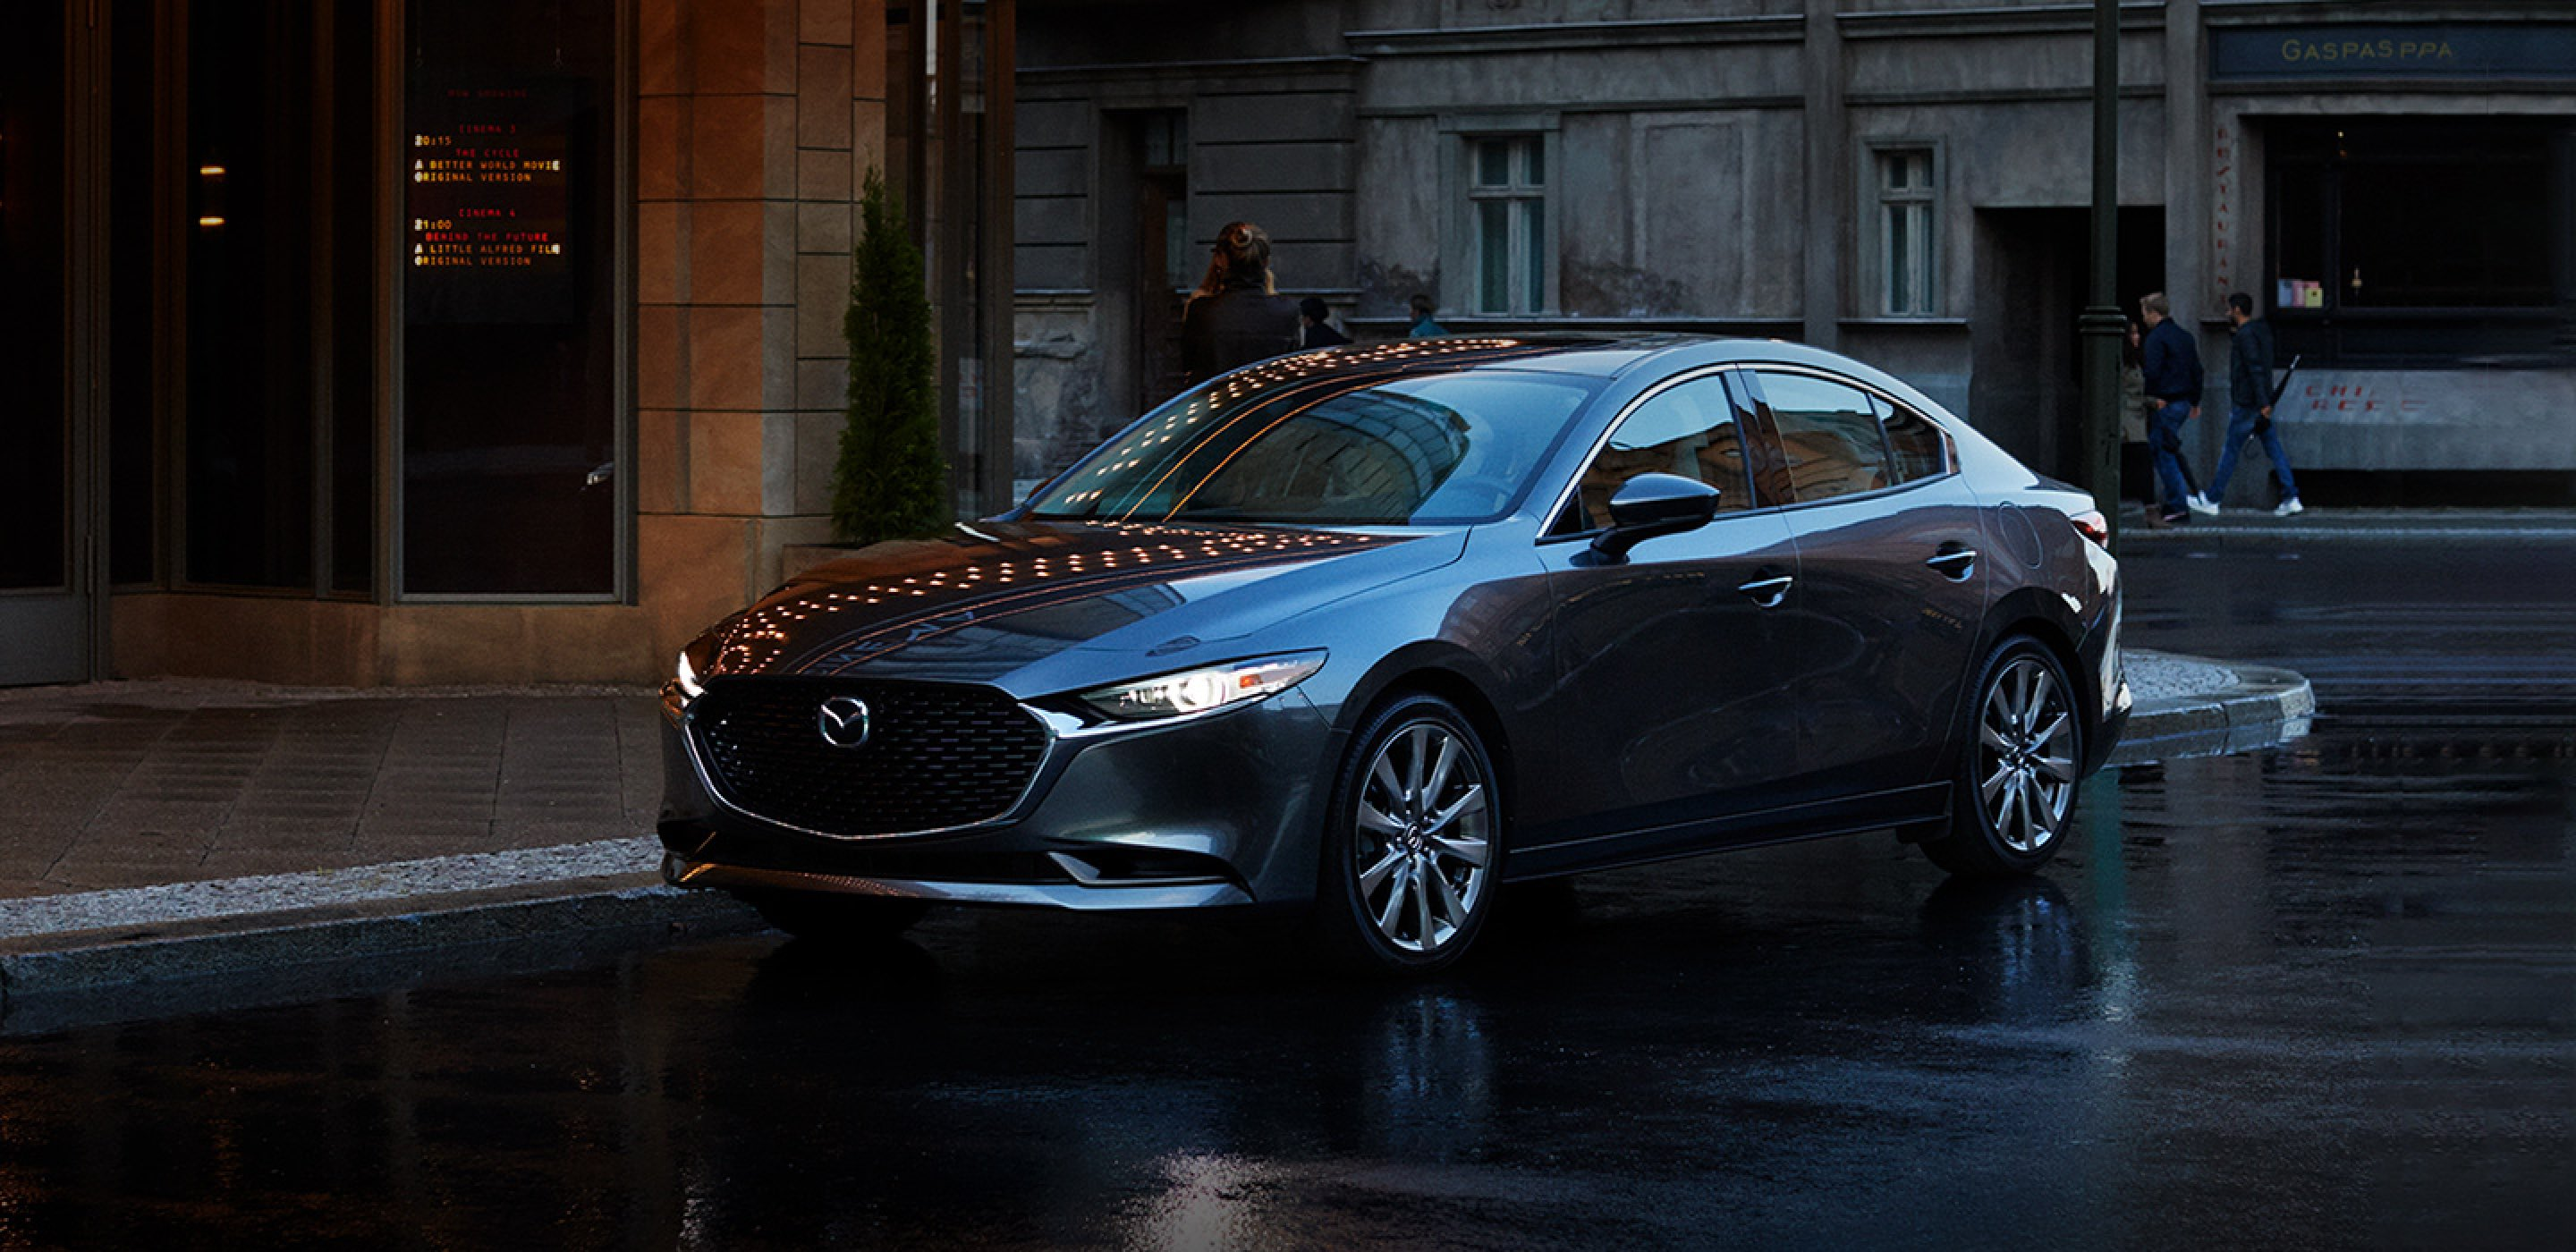 2021 Mazda3 Sedan, HATCHBACK'S SUAVE ALTER EGO